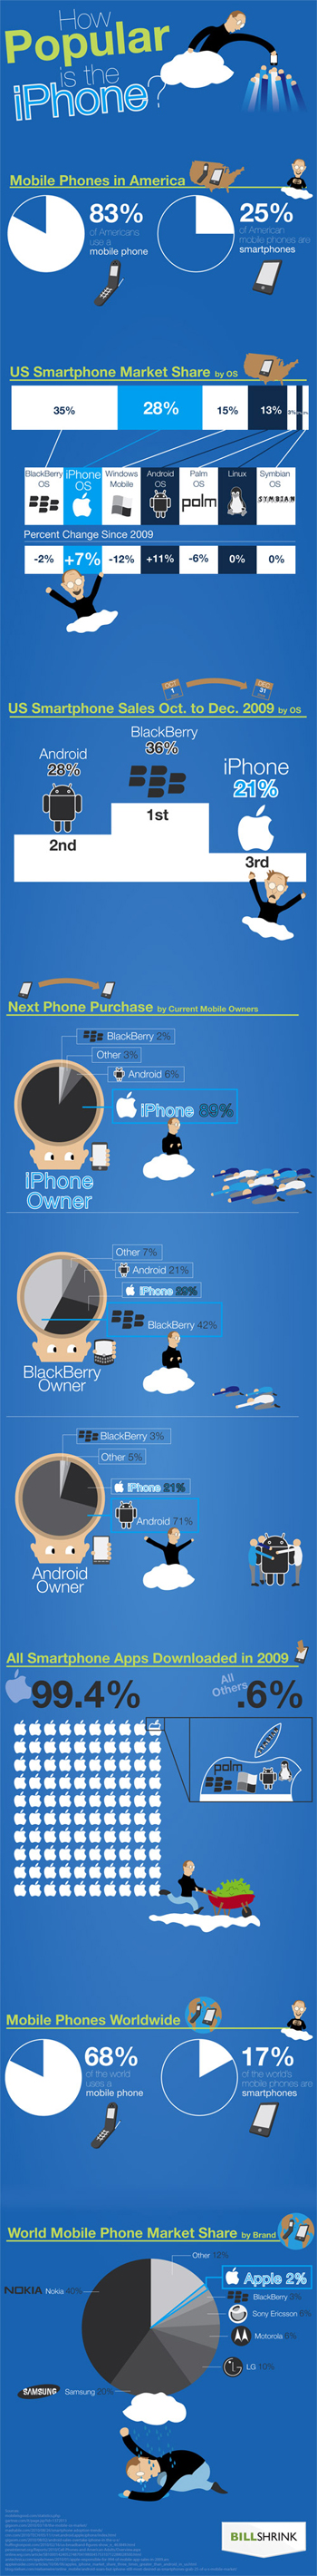 iPhone US Smartphone Use